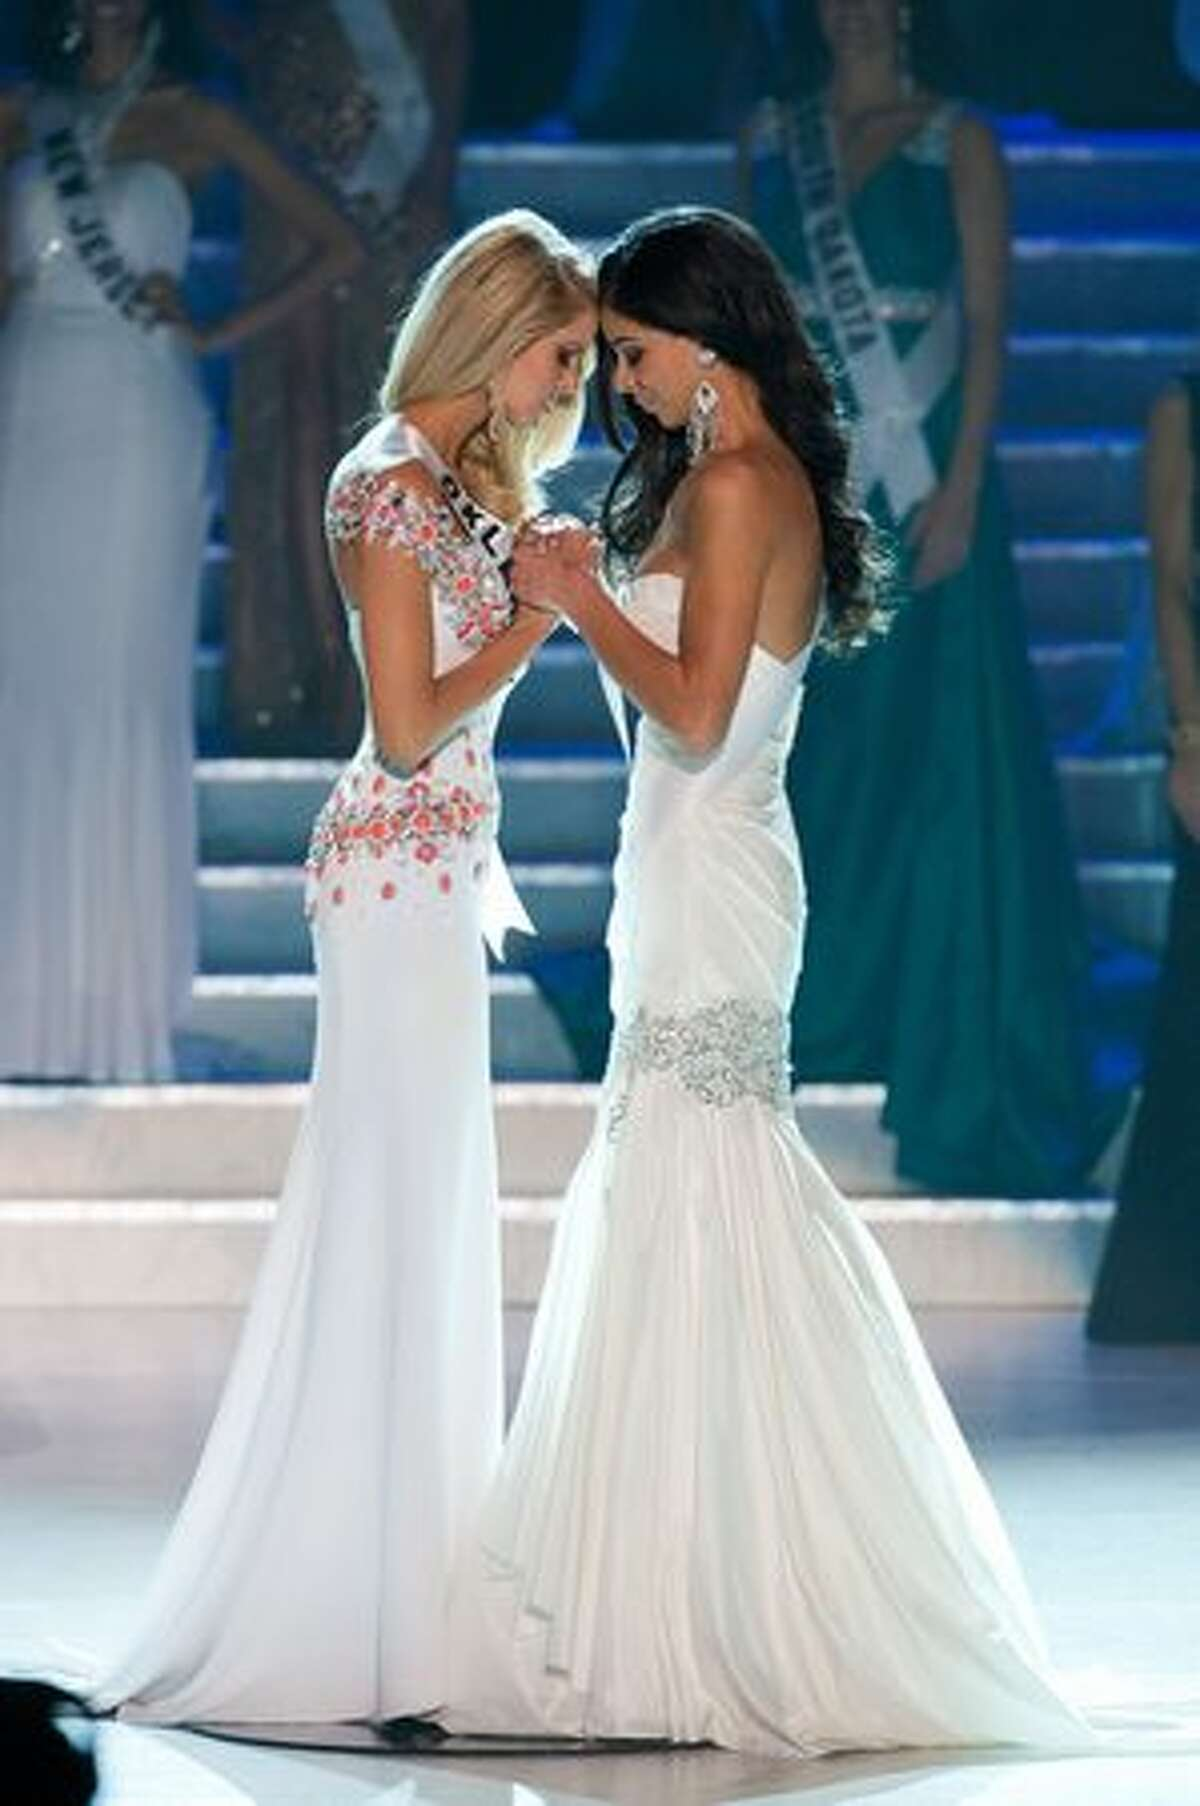 Morgan Elizabeth Woolard, Miss Oklahoma USA 2010, and Rima Fakih, Miss Michigan USA 2010, wait to hear the announcement of Fakih as Miss USA 2010 at the conclusion of the 2010 Miss USA competition at the Planet Hollywood Resort and Casino in Las Vegas on Sunday, May 16, 2010.